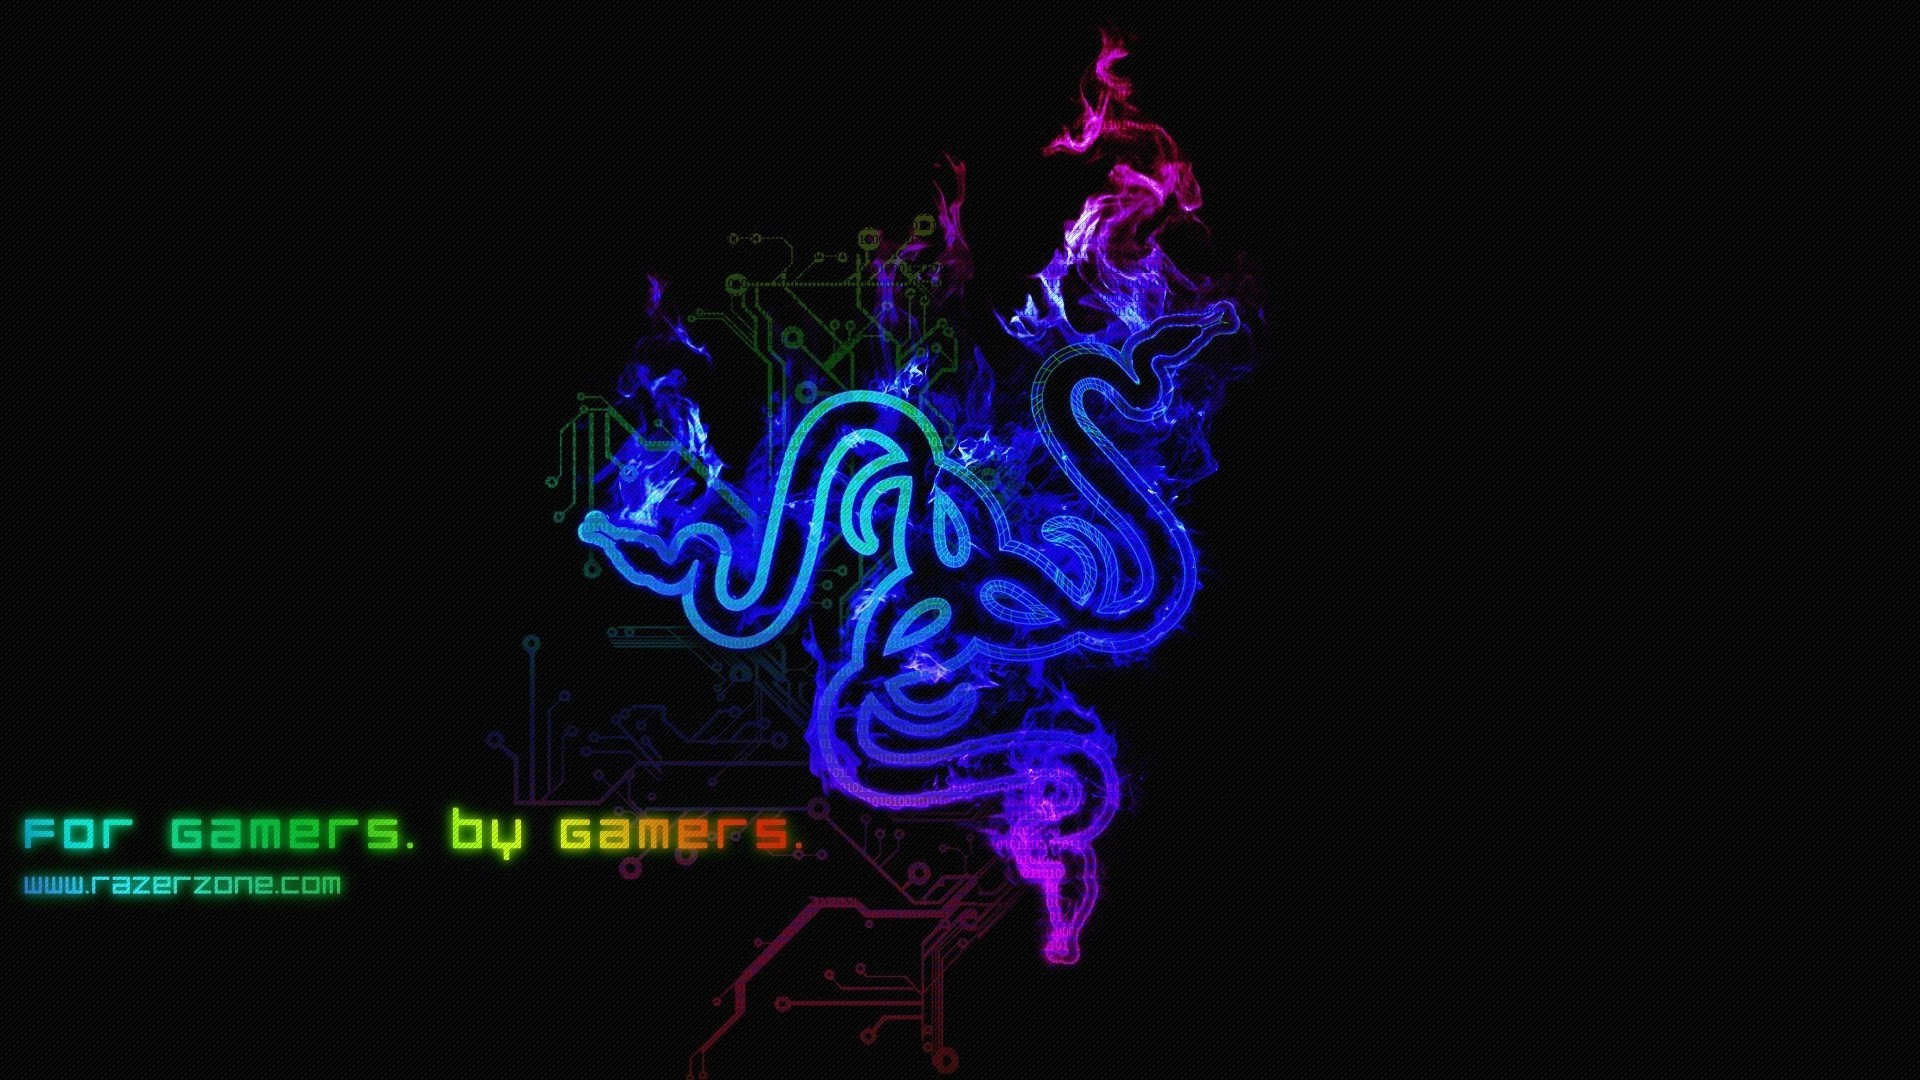 razer pic: Full HD Pictures, (620 kB)